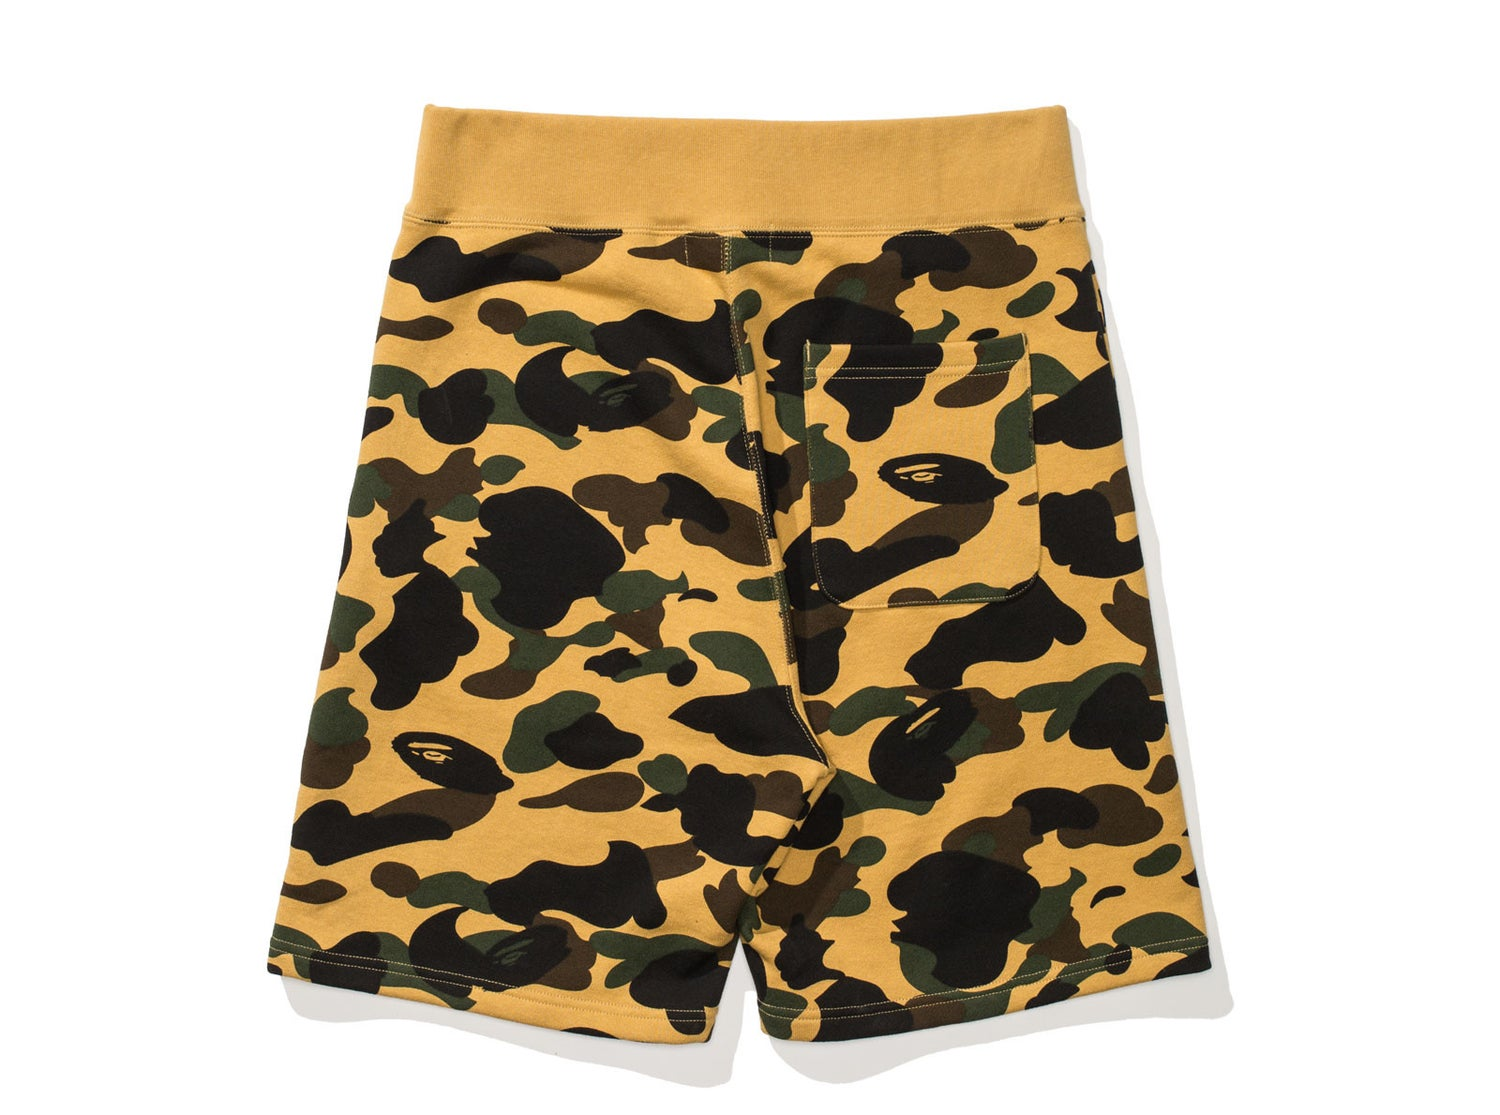 Image of BAPE 1ST CAMO SWEAT SHORTS 'Yellow Camo'